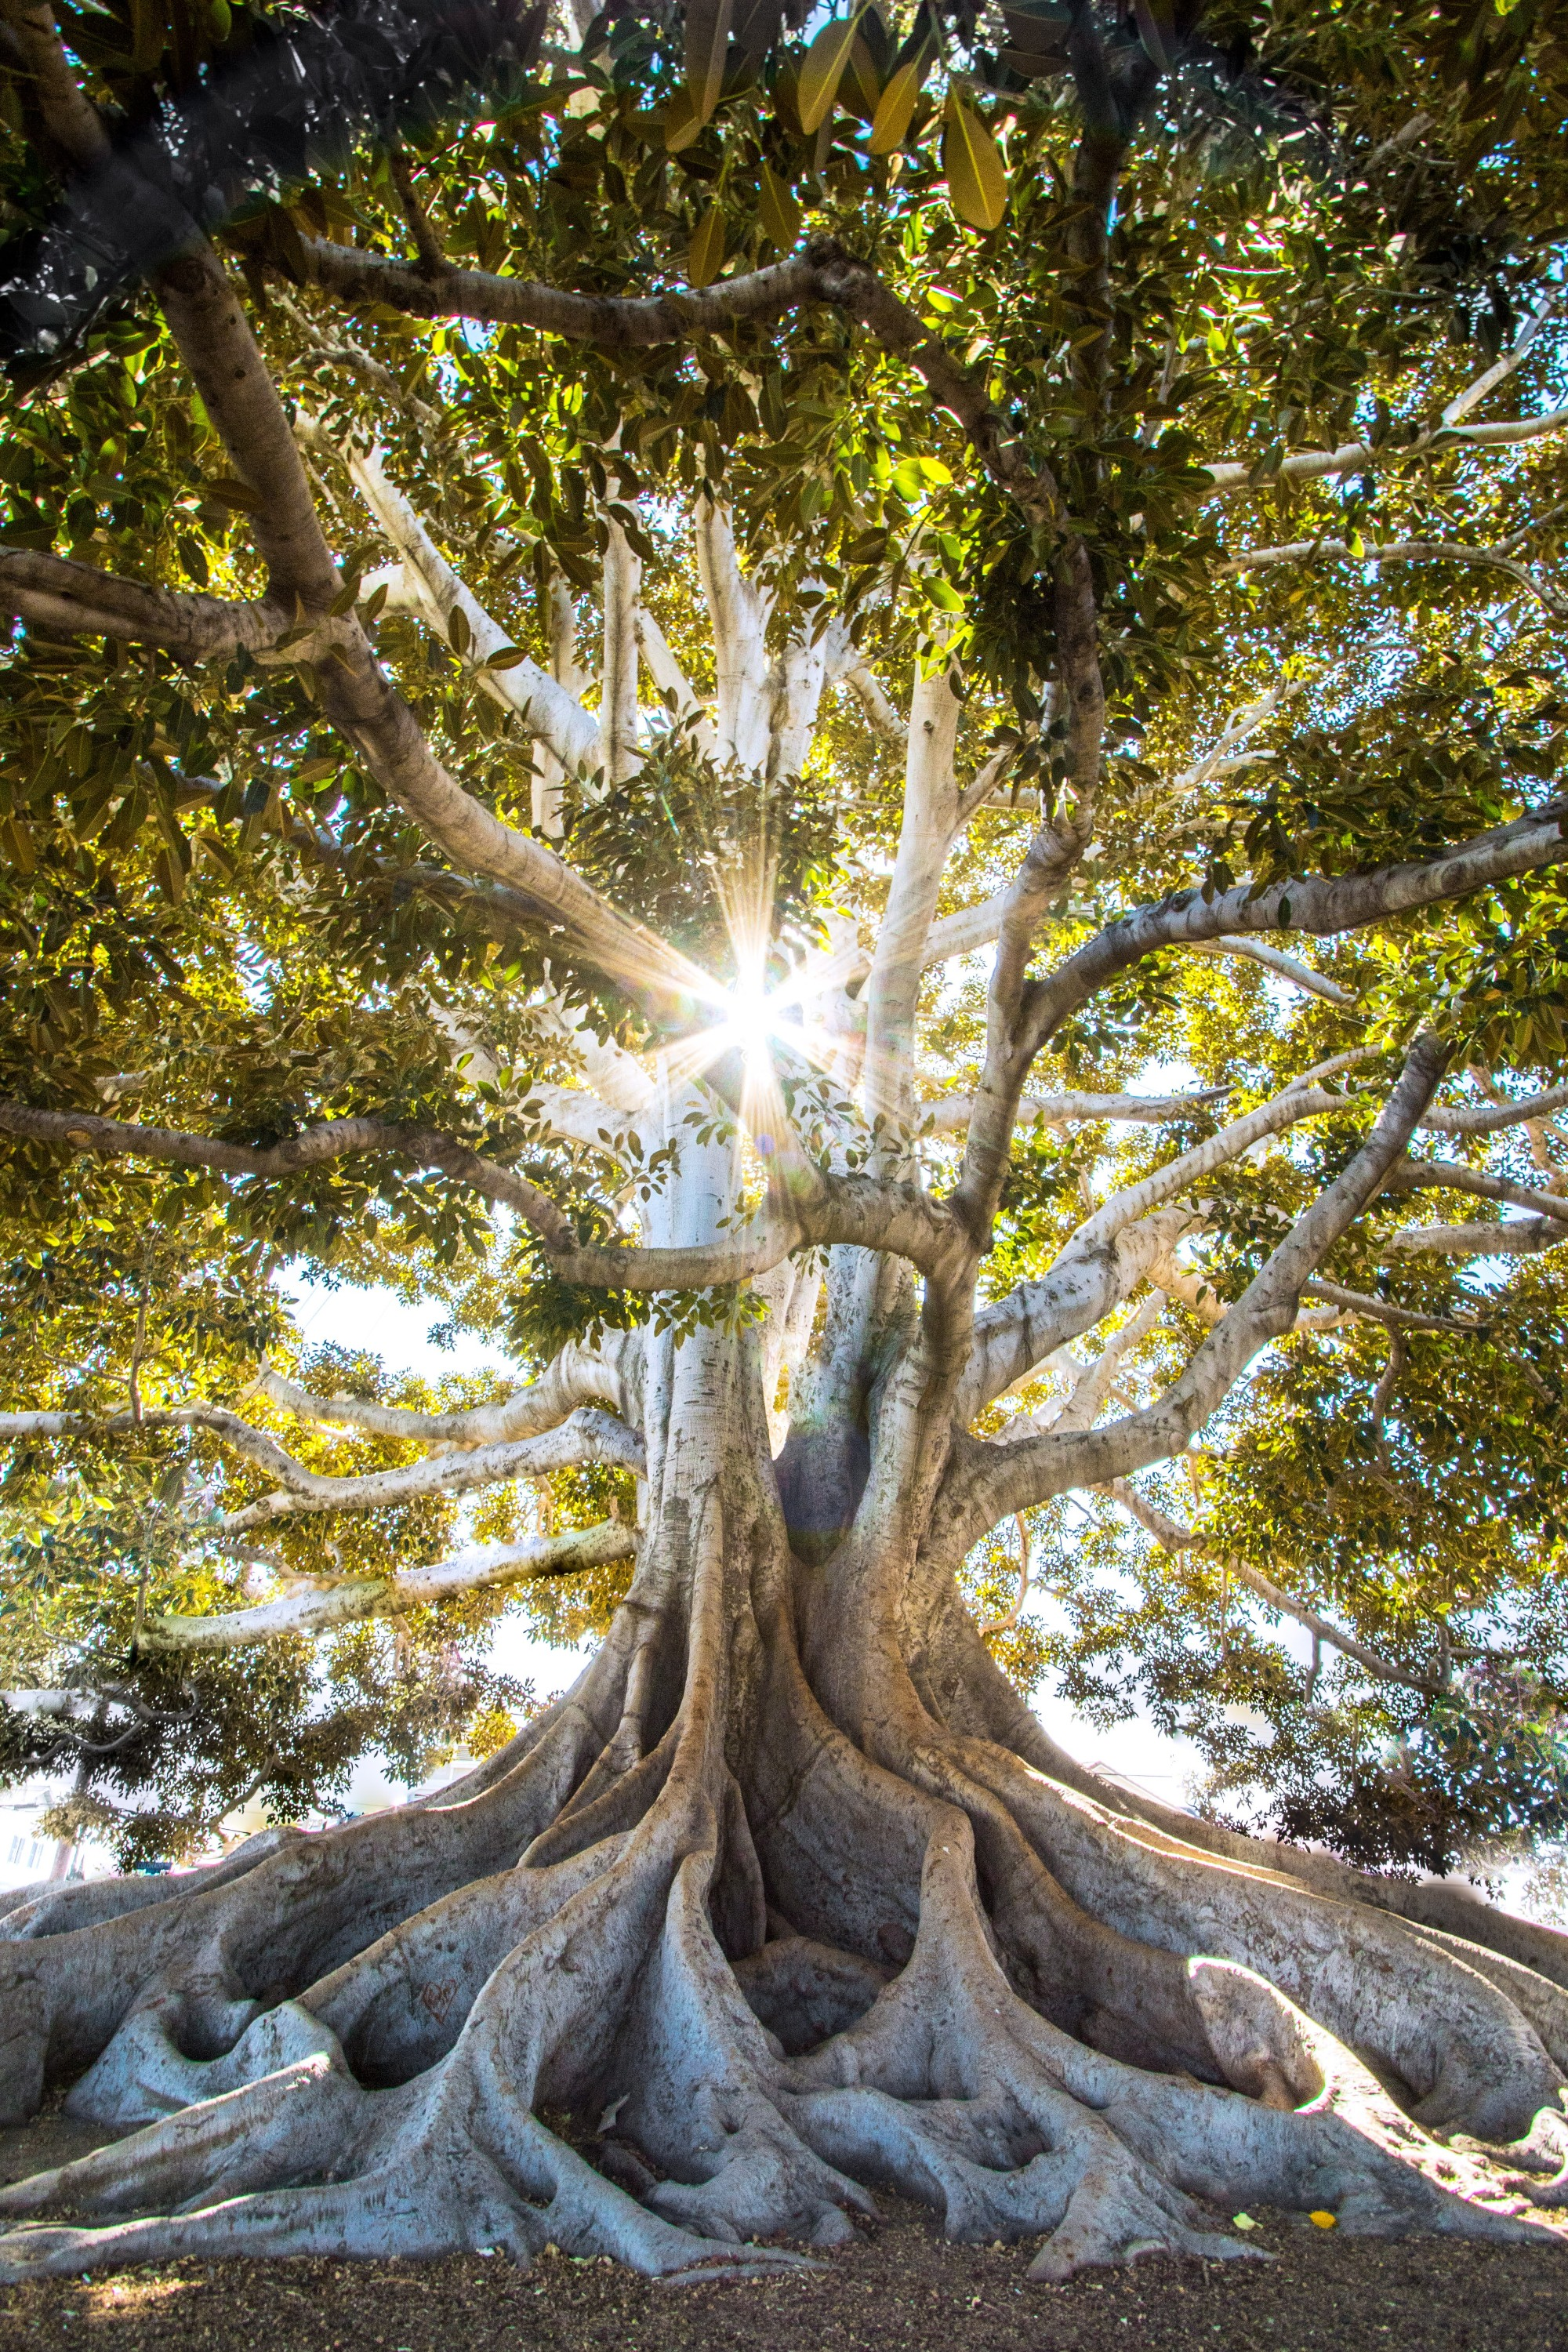 Sun through tree. jeremy-bishop-556948-unsplash – Edited